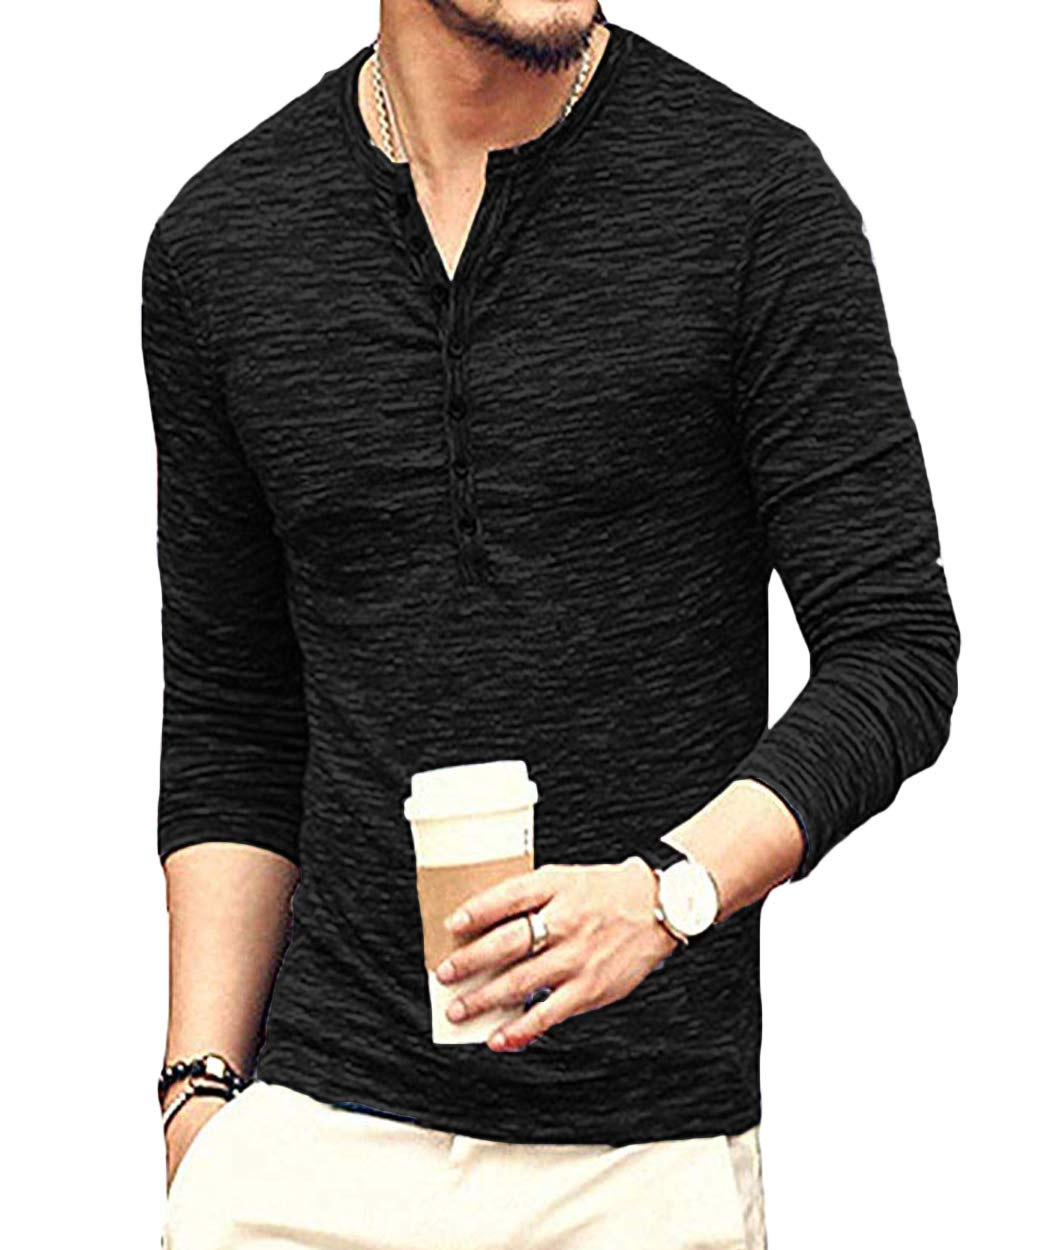 Neoyowo Men's Henley Shirt Casual Slim Fit Long Sleeve T-Shirt Soft V Neck Buttons Muscle Tops (Black, M)